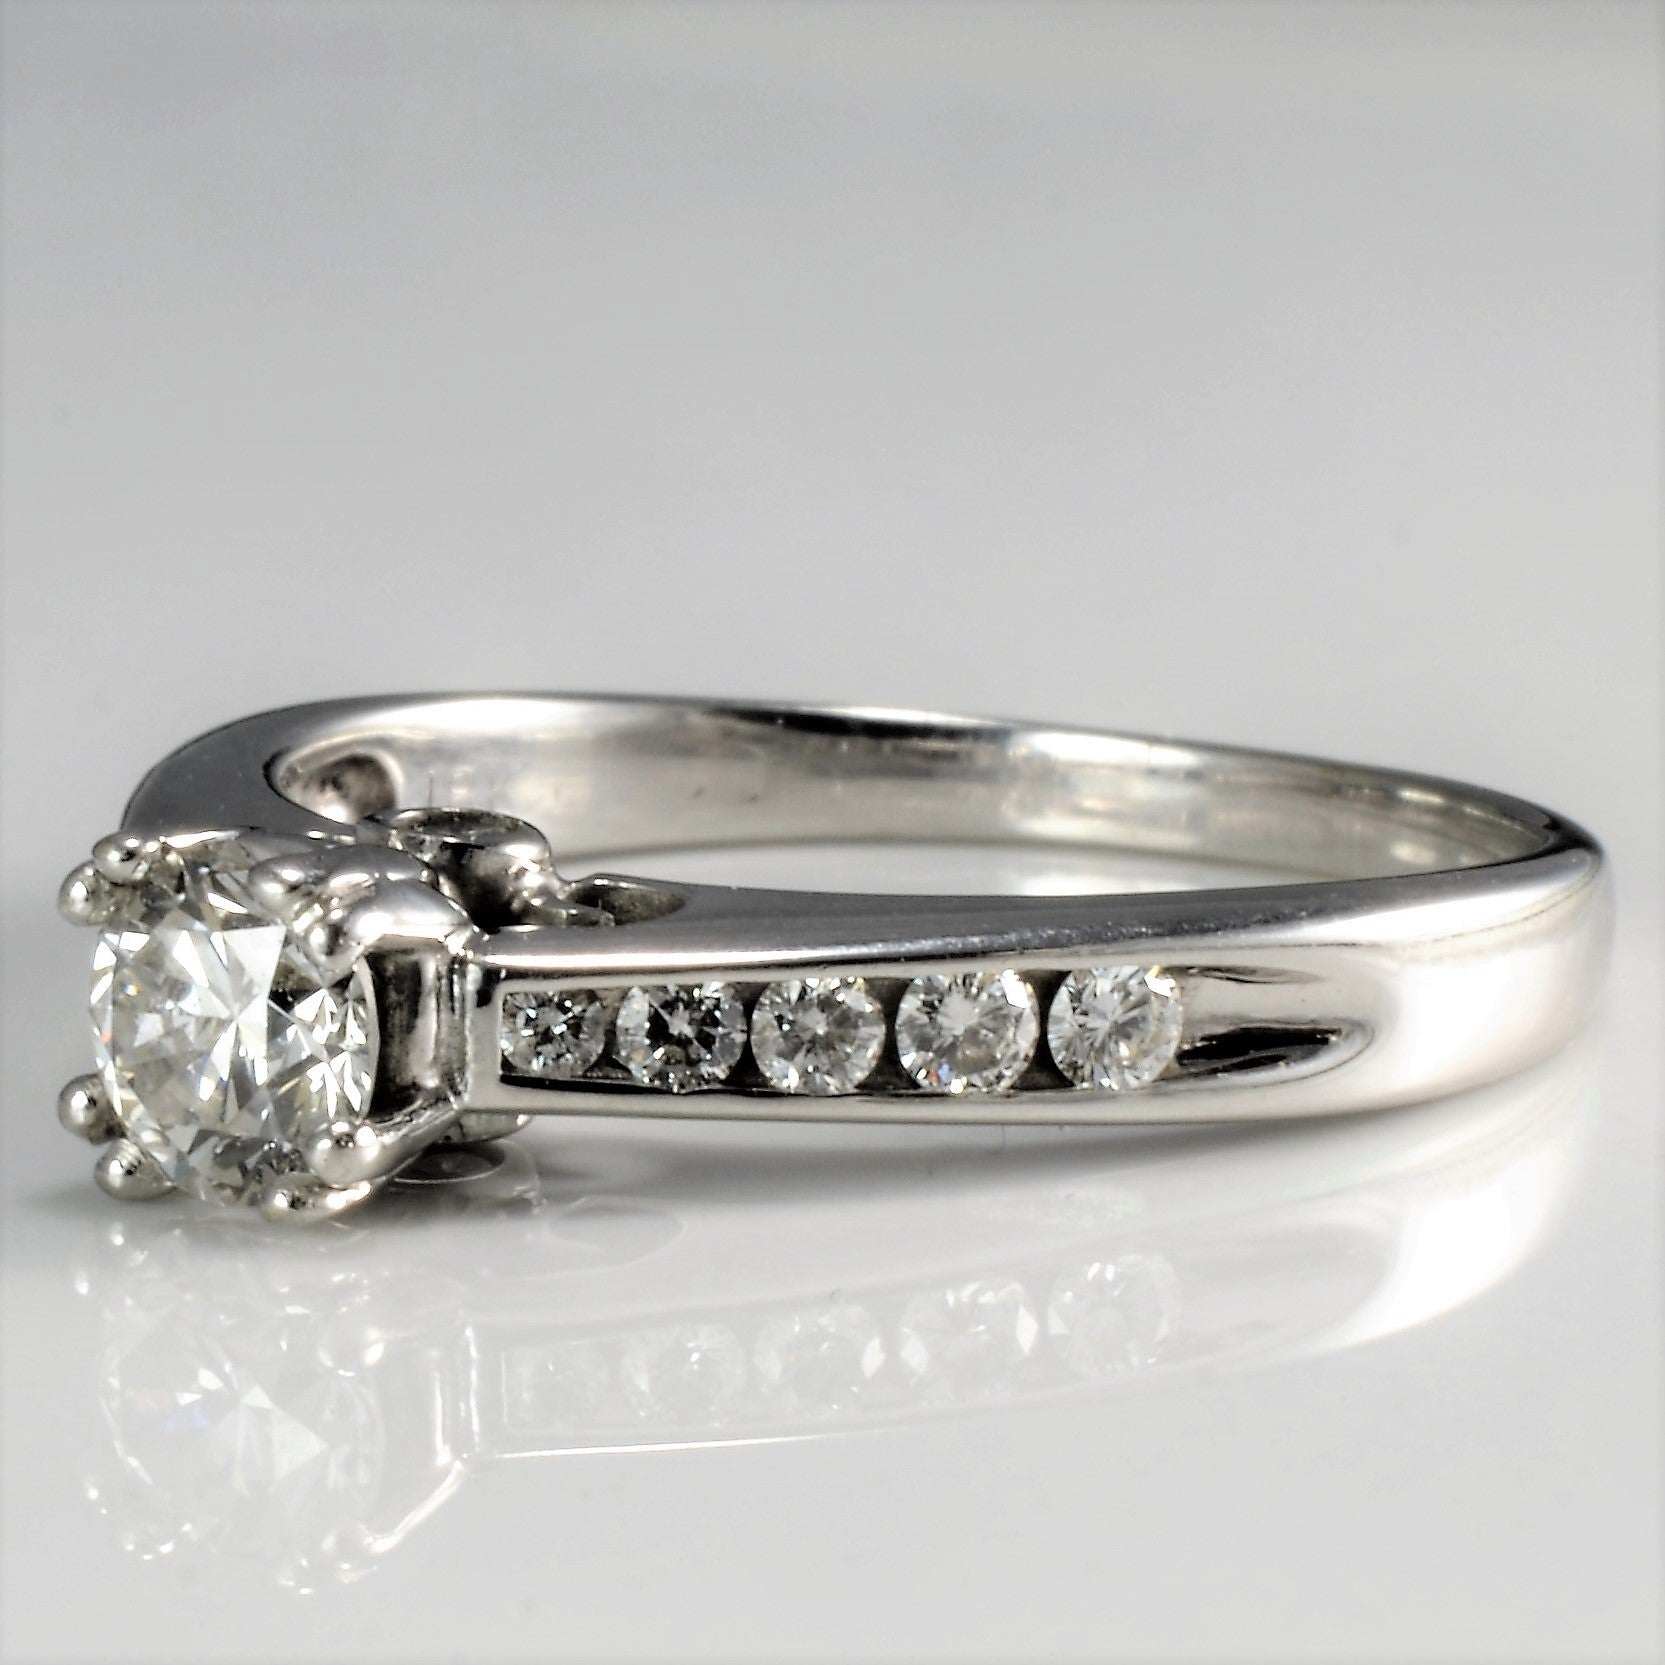 High Set Diamond Engagement Ring | 0.75 ctw, SZ 8.5 |